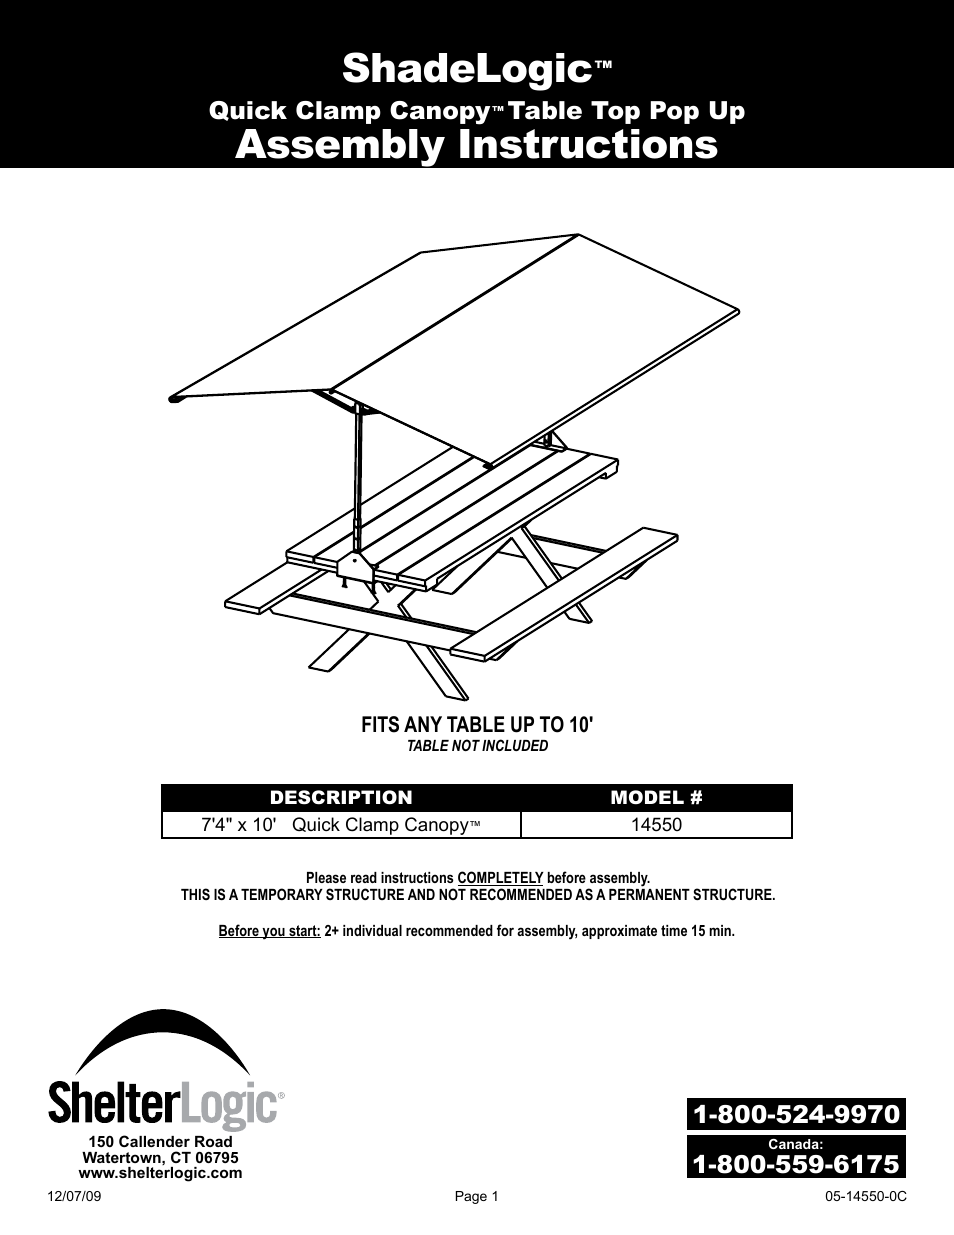 sc 1 st  manualsdir.com & ShelterLogic 14550 7 4 x 10 Quick Clamp Canopy User Manual | 12 pages